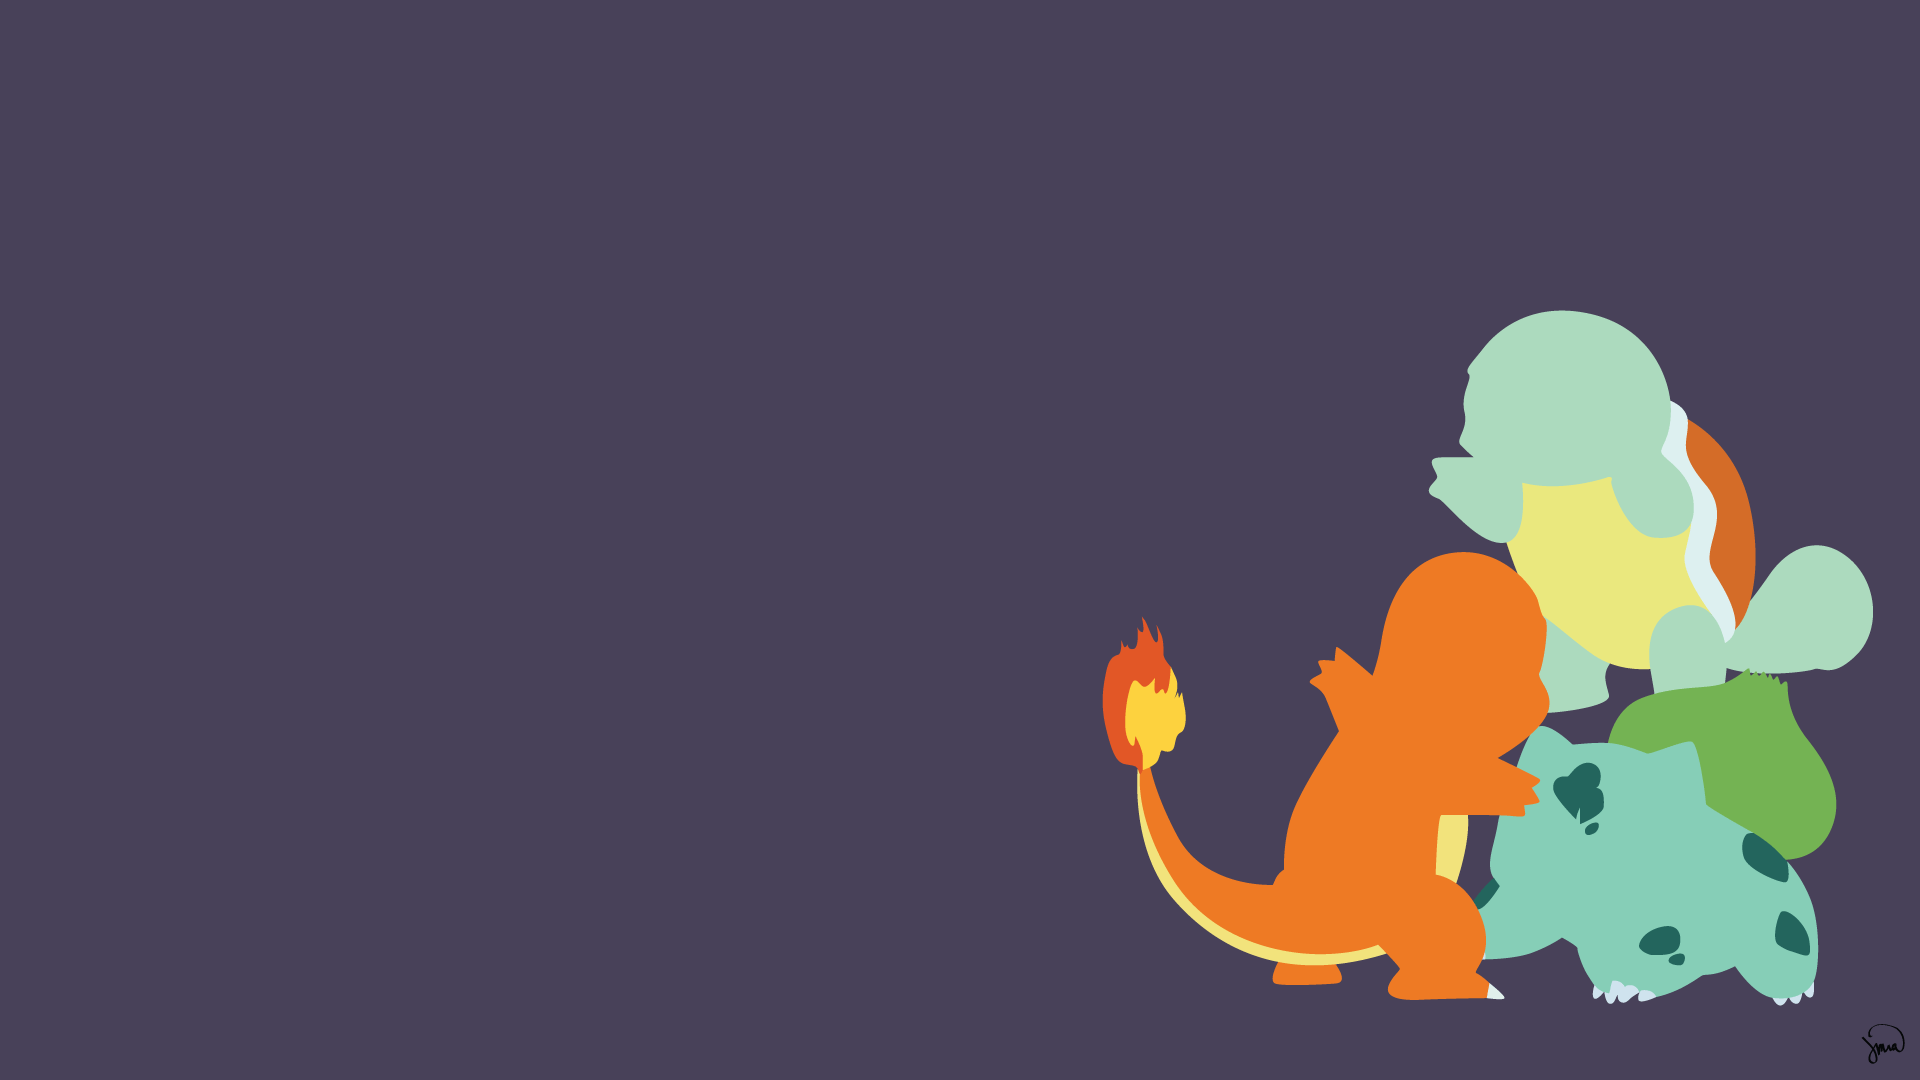 Lady Insanity 406 Anime Minimalist Vector Wallpapers